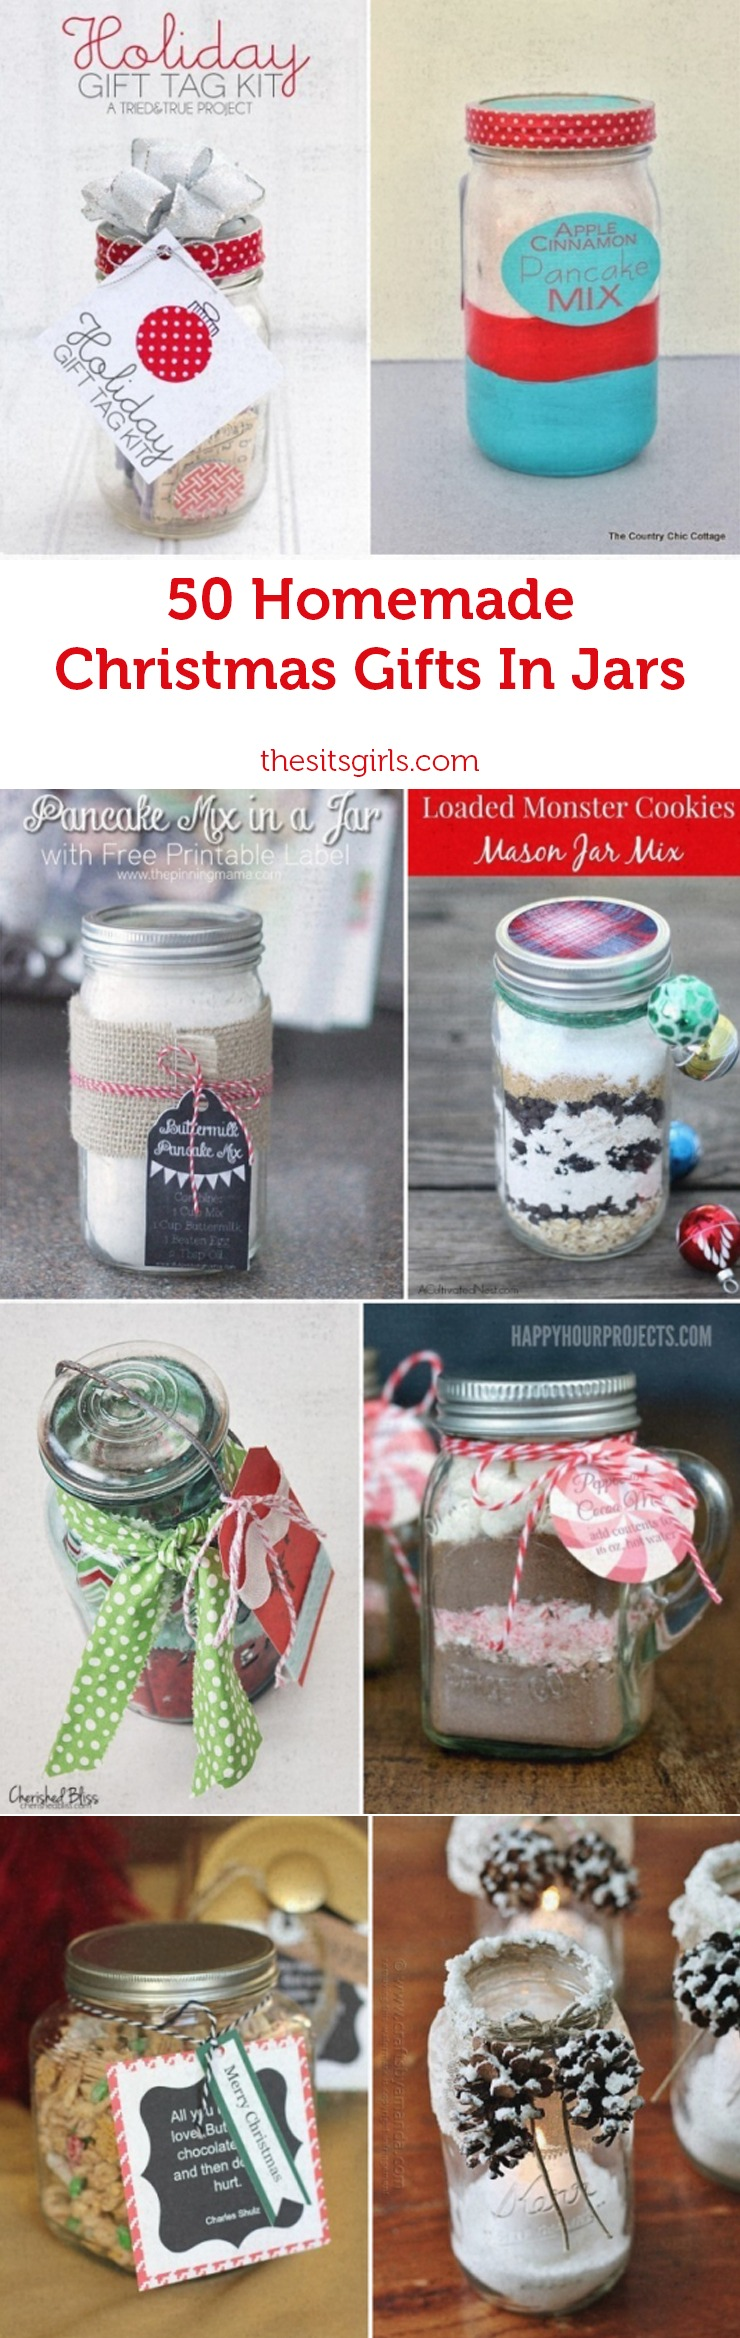 Gifts In Jars | 50 Homemade Christmas Gifts